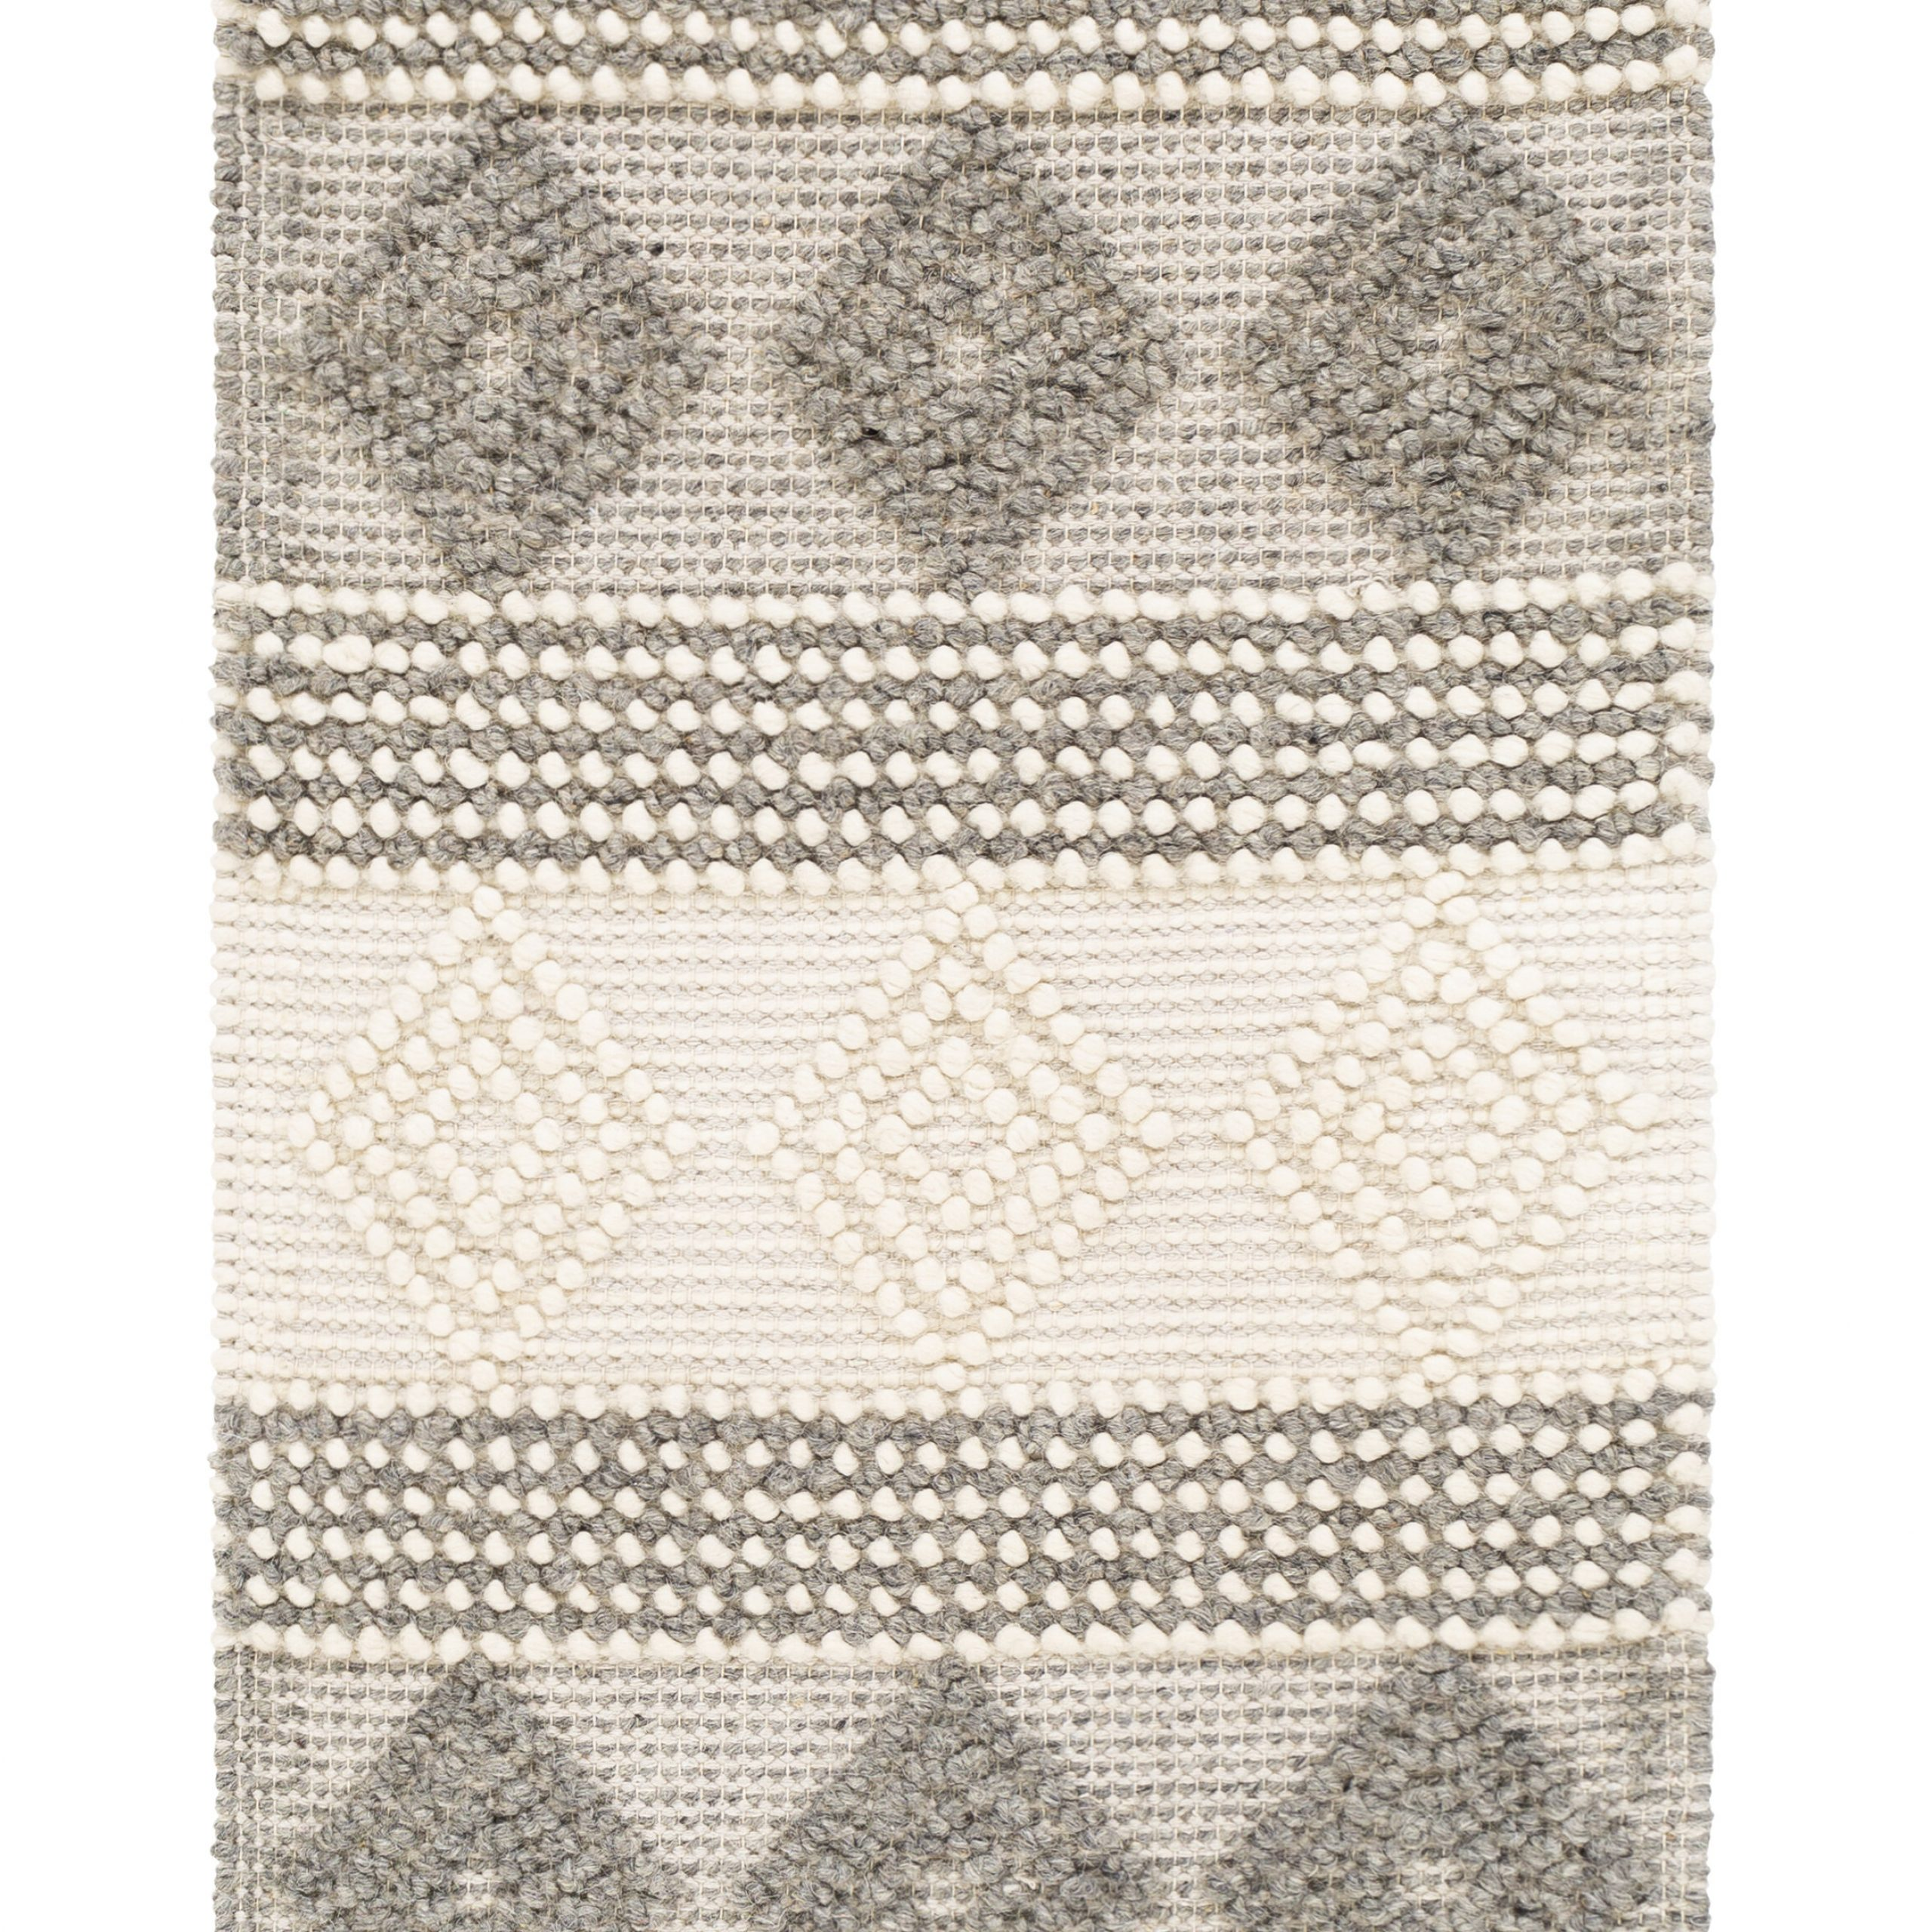 Clancy Wool And Cotton Wall Hanging With Hanging Accessories Included Intended For Most Popular Blended Fabric Southwestern Bohemian Wall Hangings (View 14 of 20)